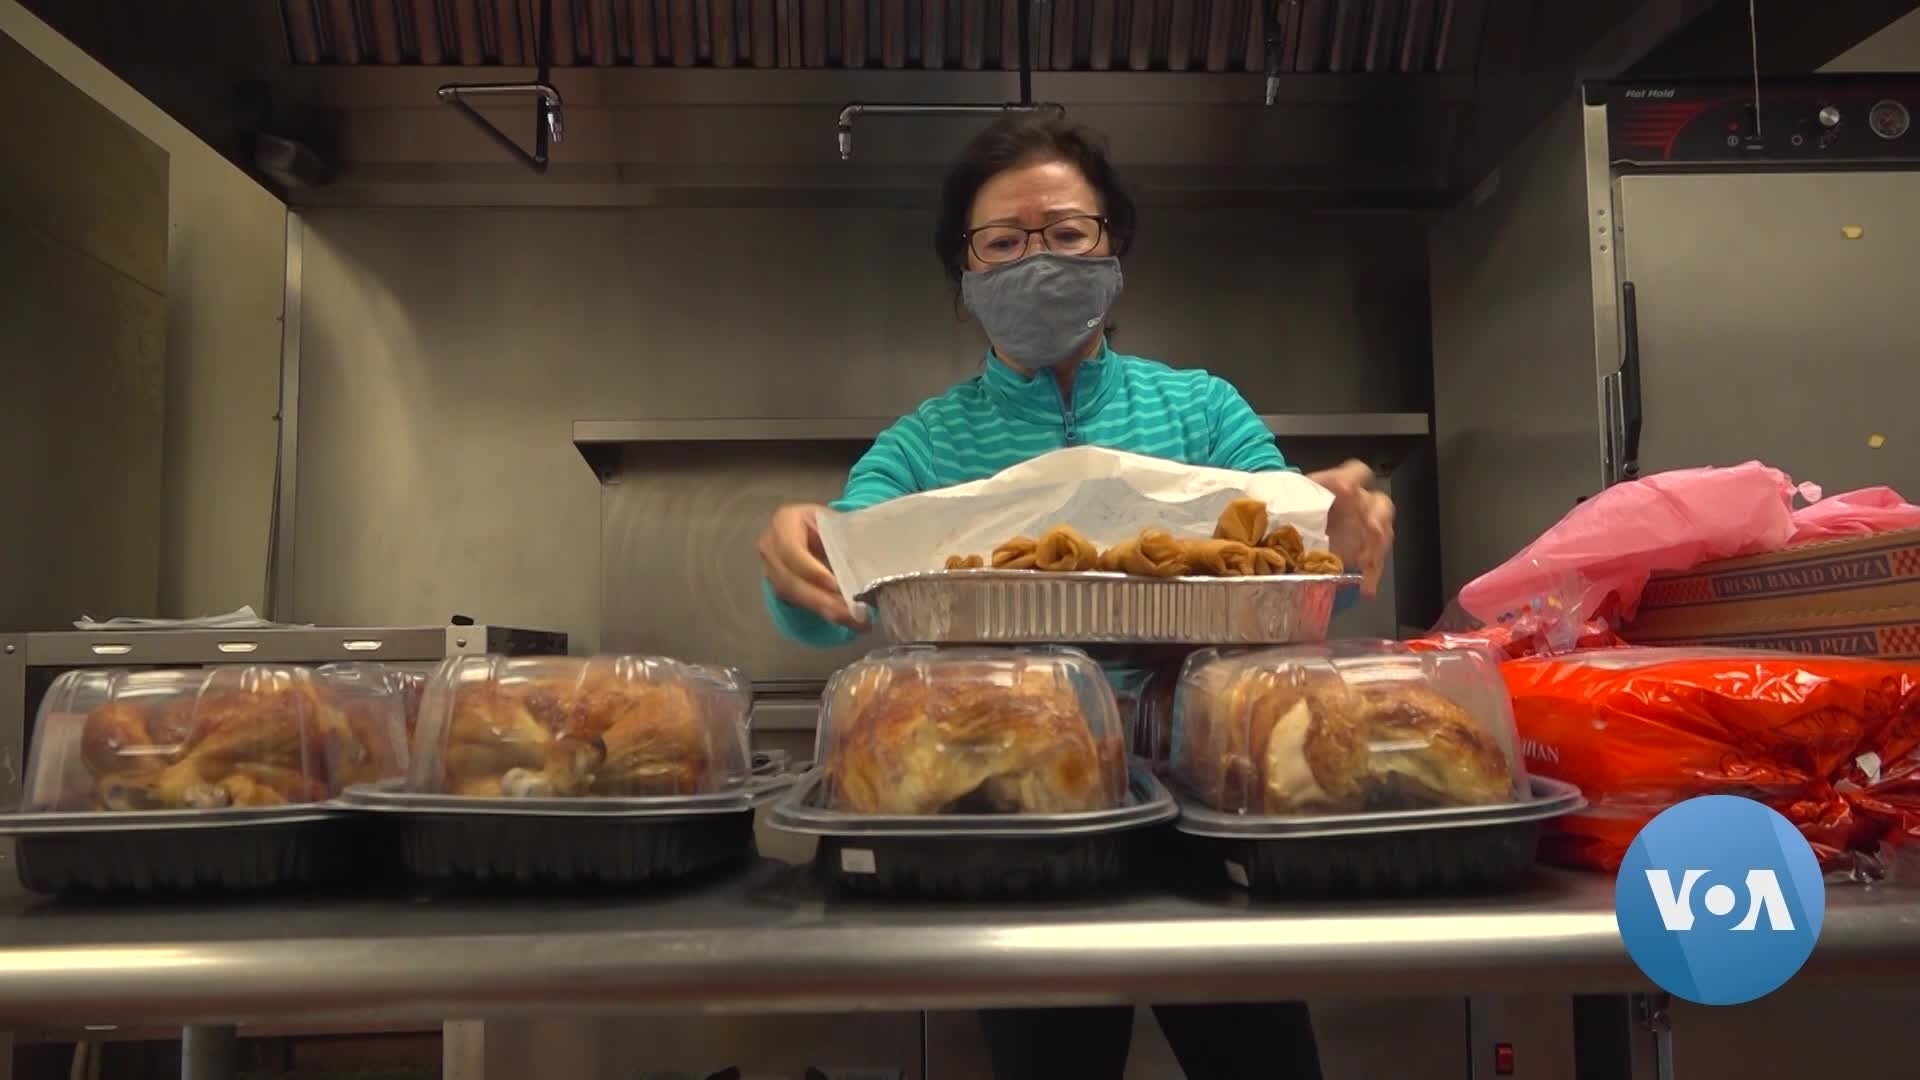 Volunteers Bring Holiday Meals to Homeless Shelters